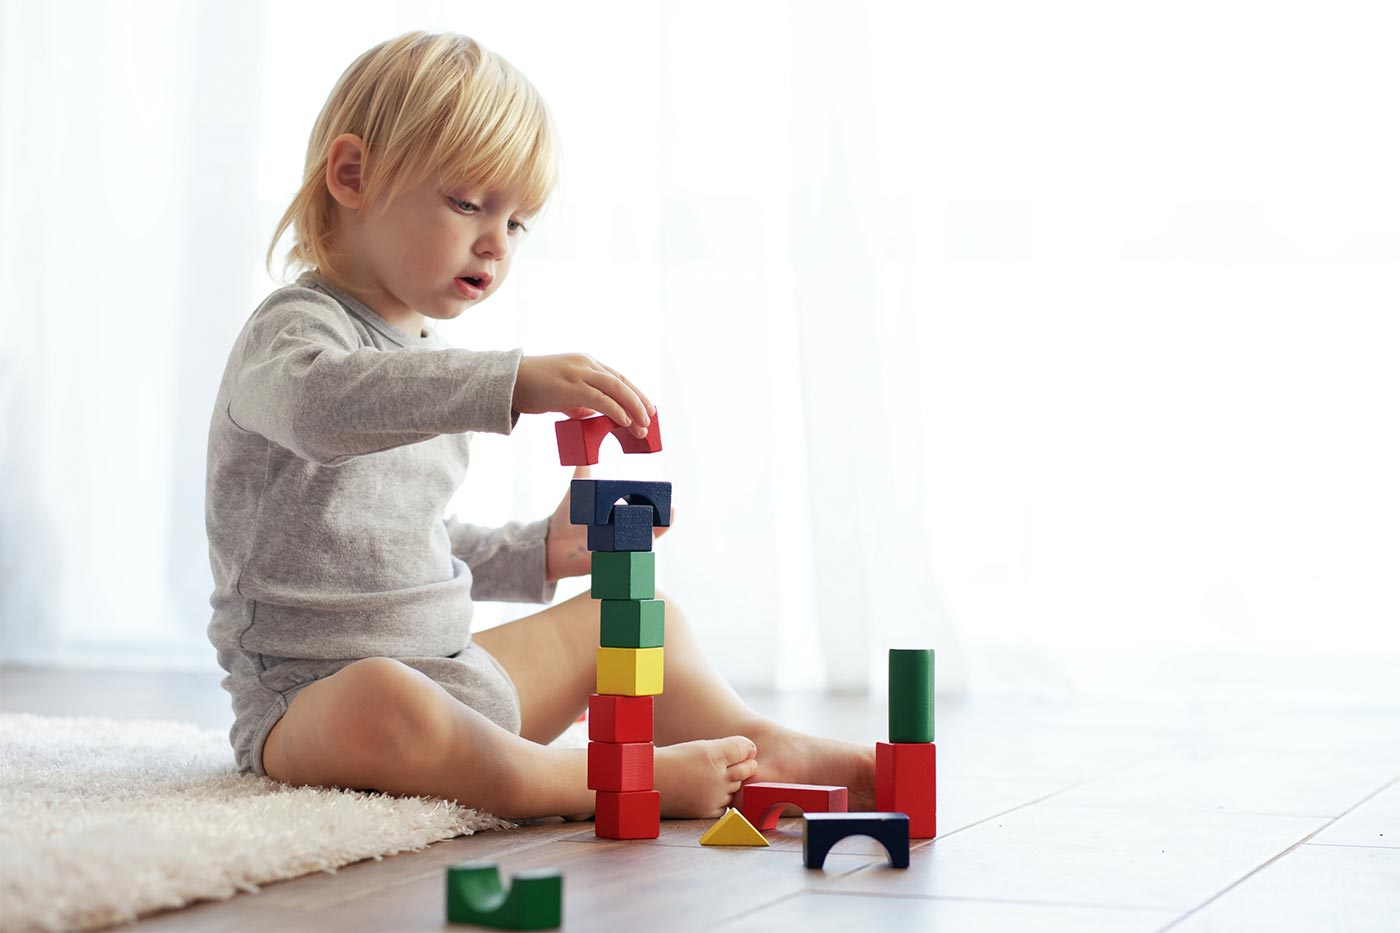 Child stacking wooden blocks